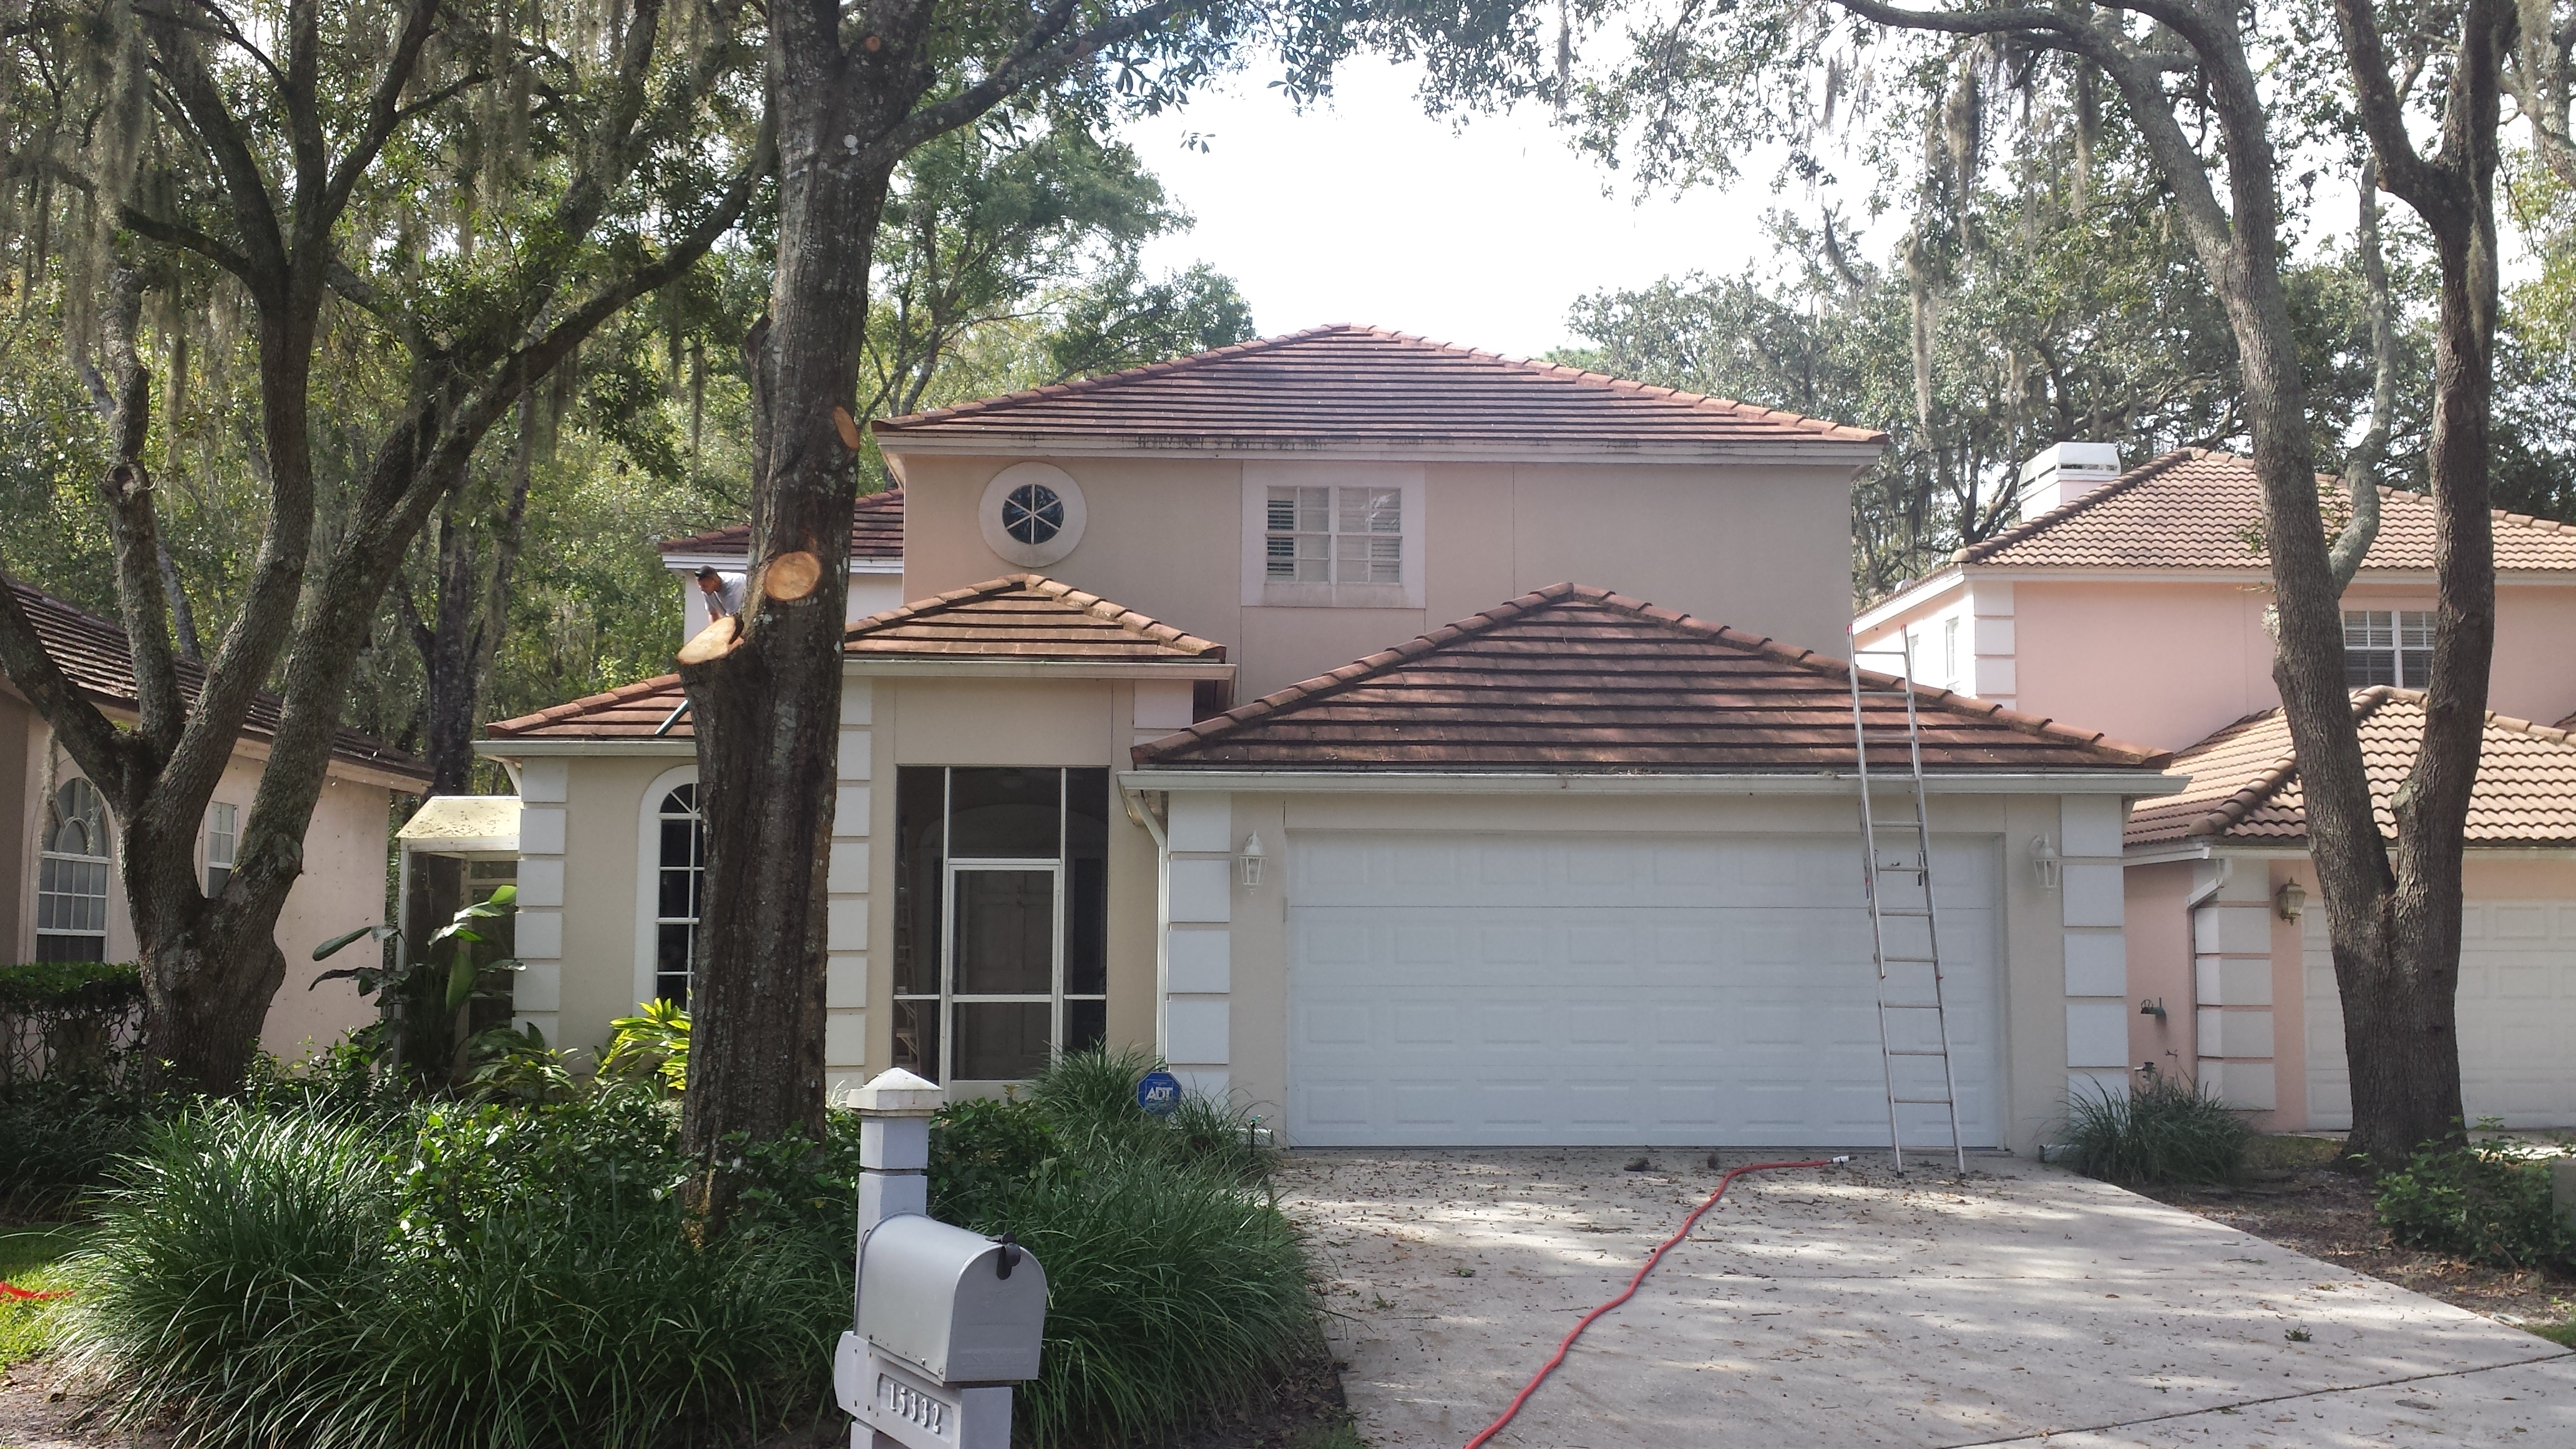 Apple Roof Cleaning Of Tampa (813)655 8777